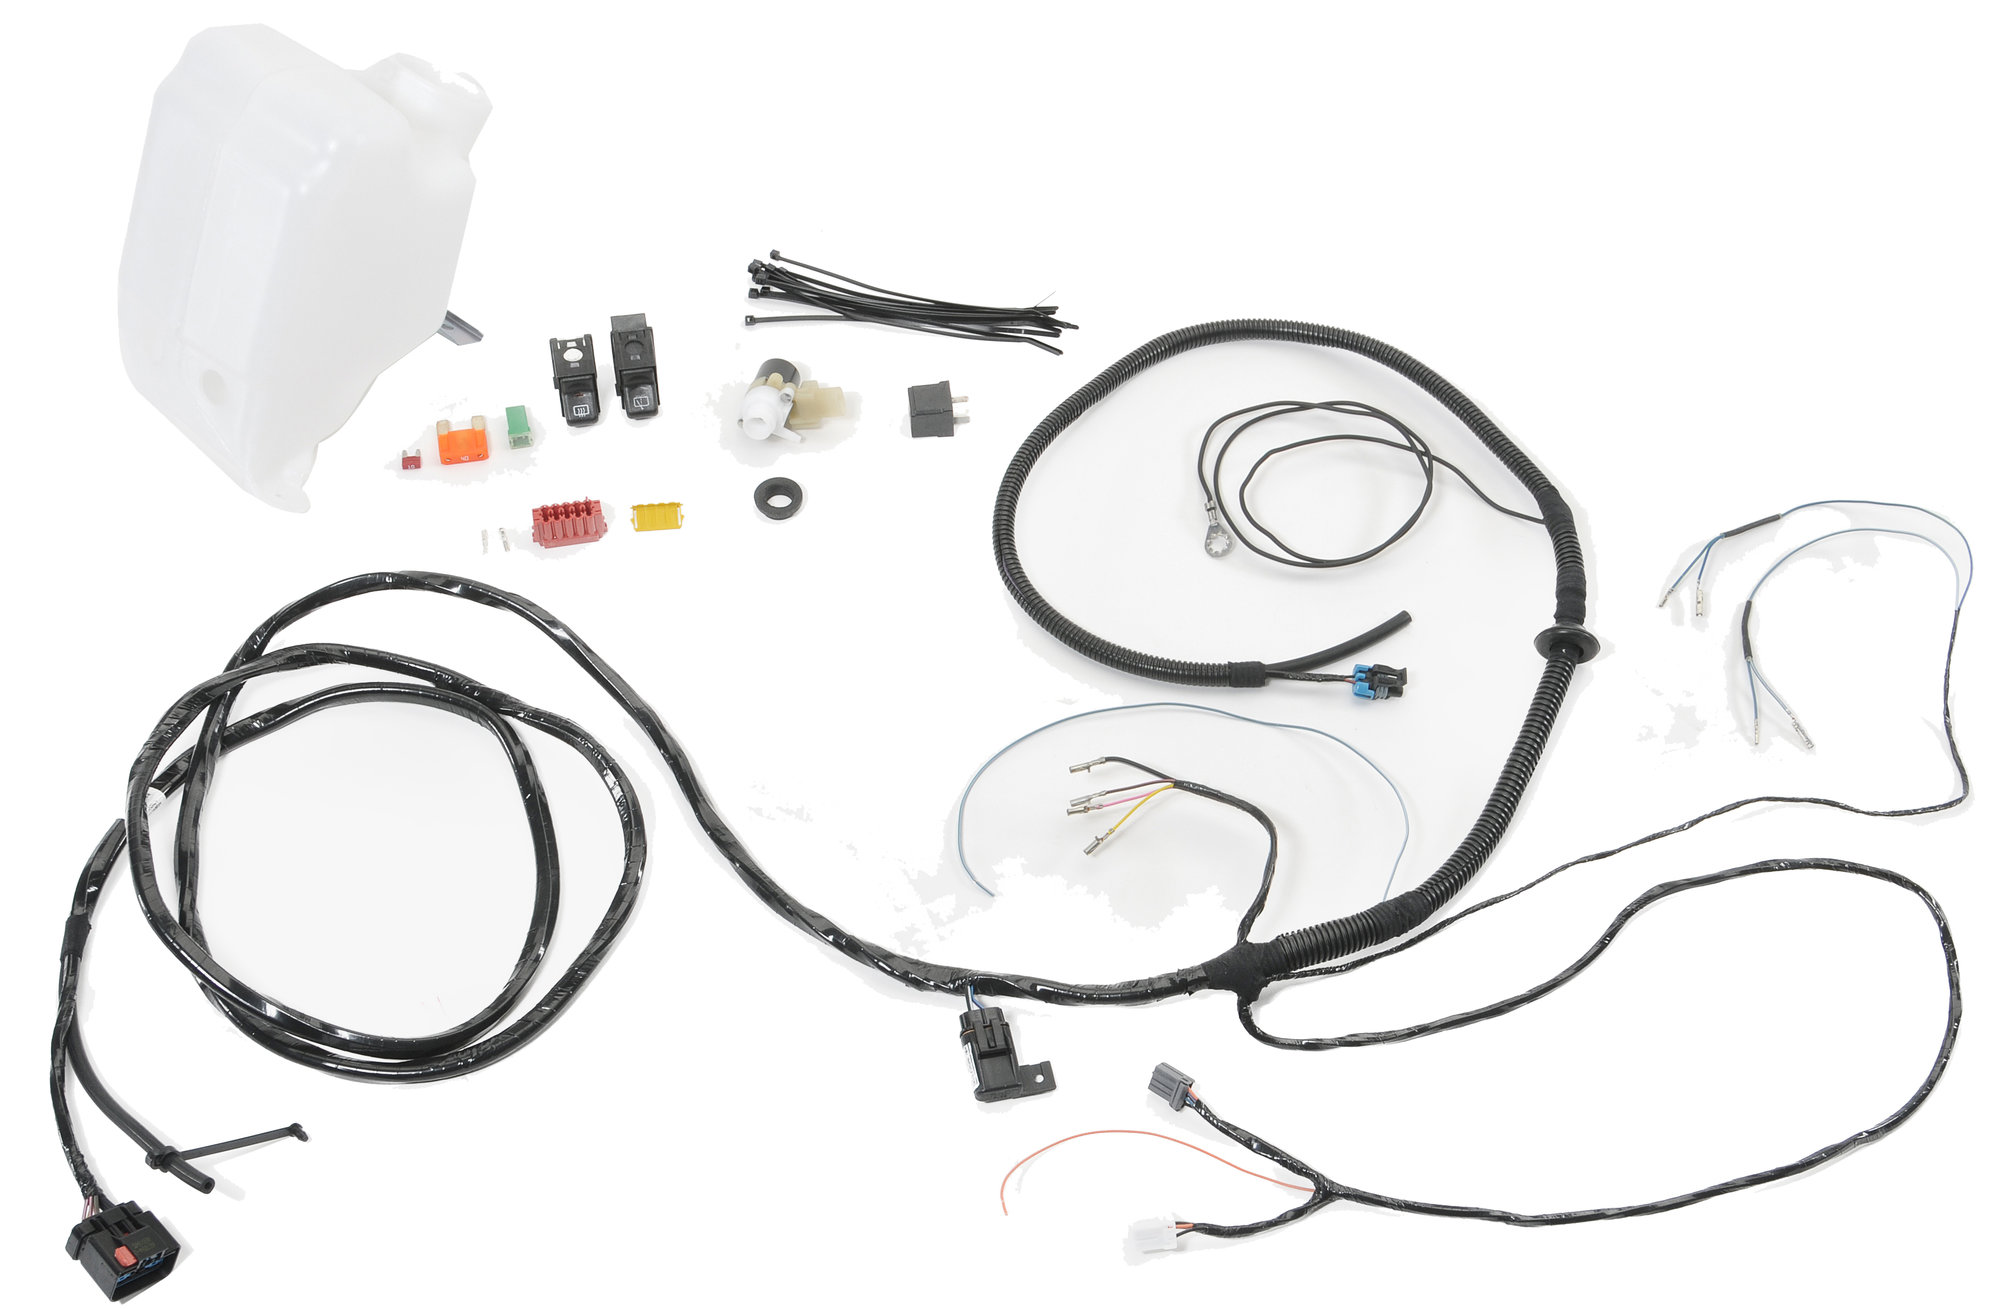 hight resolution of jeep wrangler hardtop wiring harness 2008 jeep wrangler hardtop wiring harness wiring schematics and on 2013